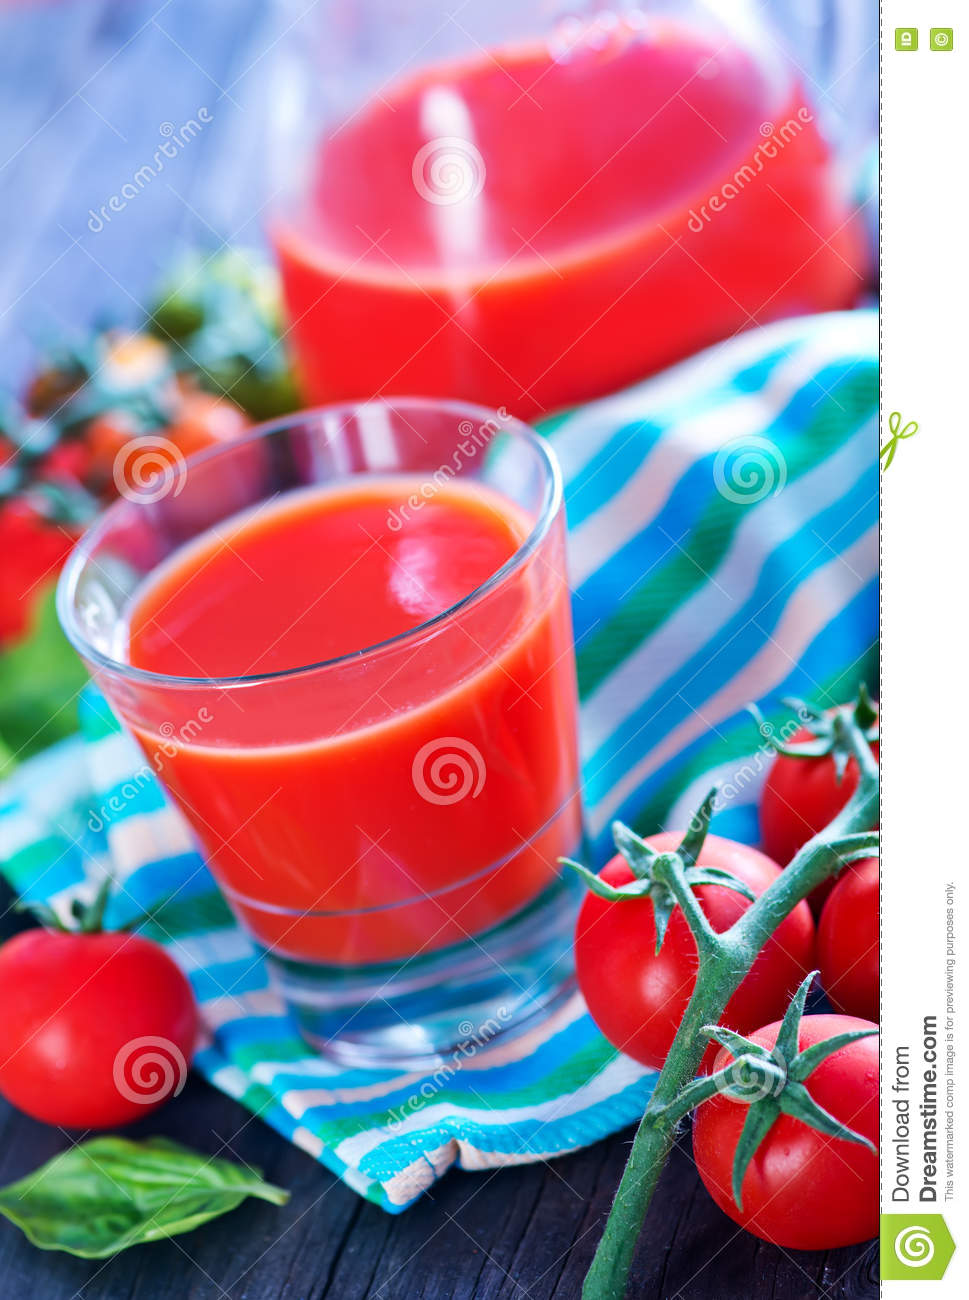 Download Juice tomato стоковое изображение. изображение насчитывающей еда - 72292383